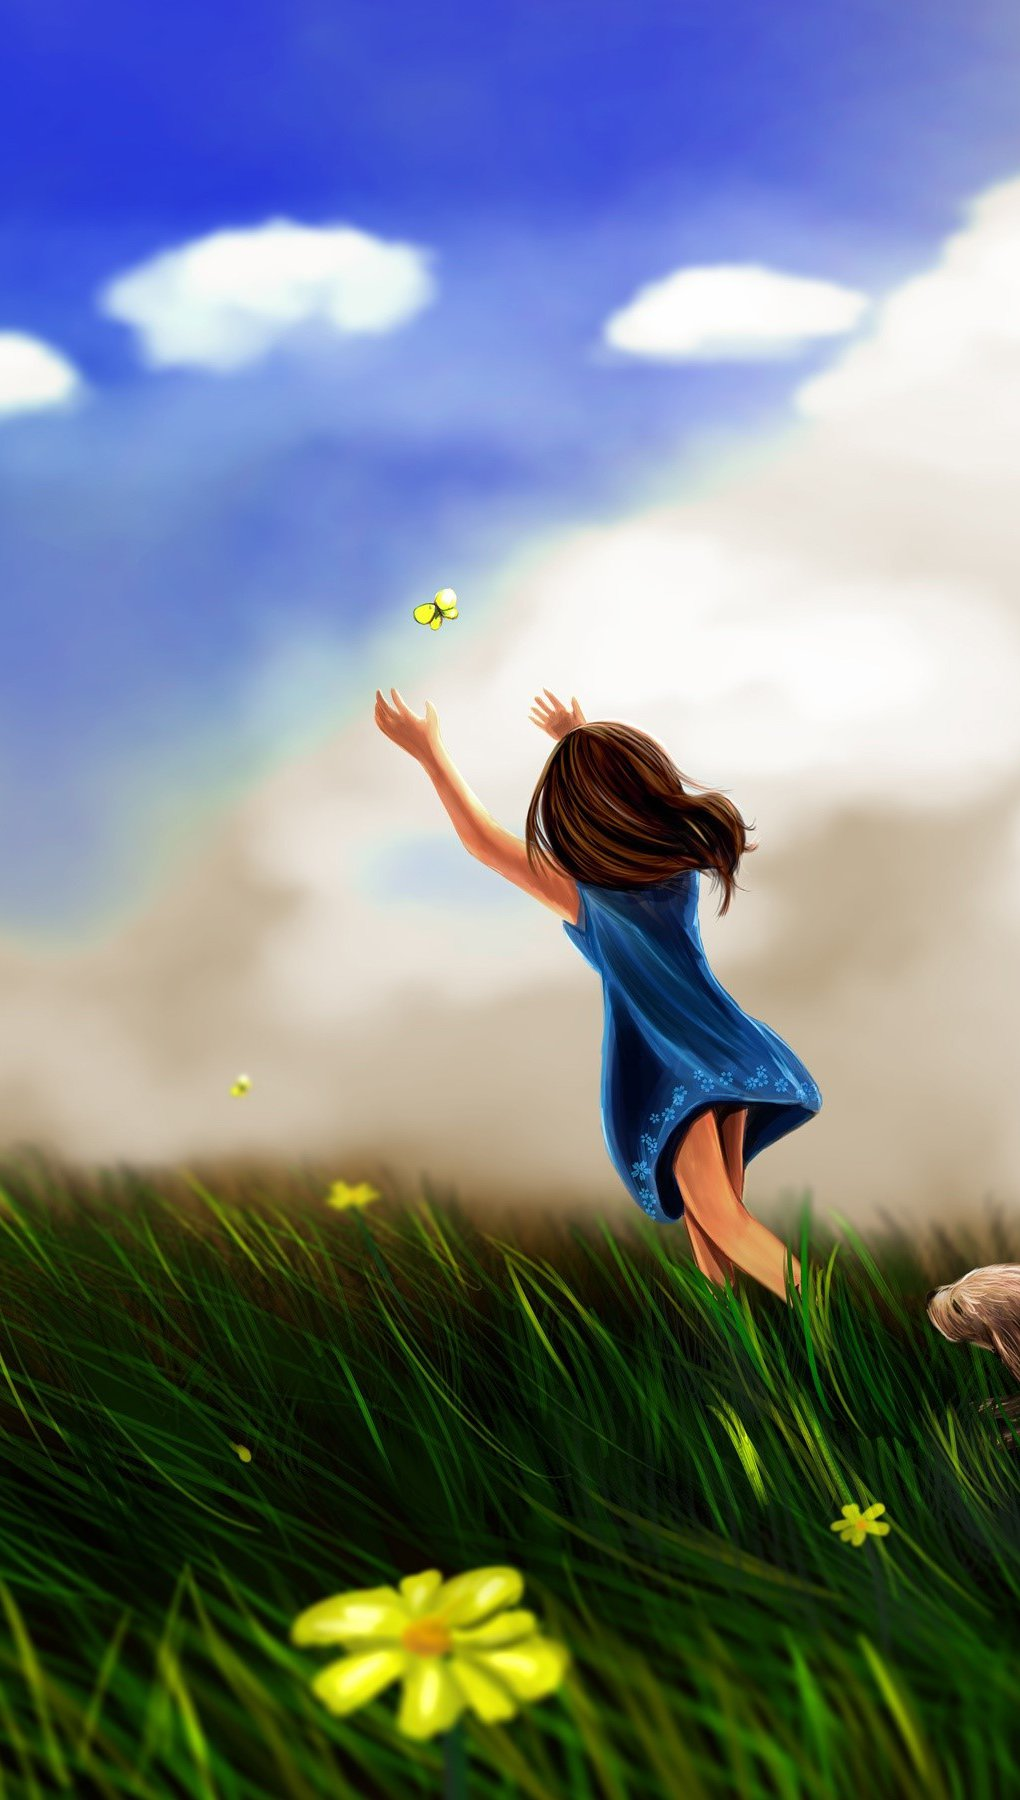 Wallpaper A girl chasing a butterfly Vertical